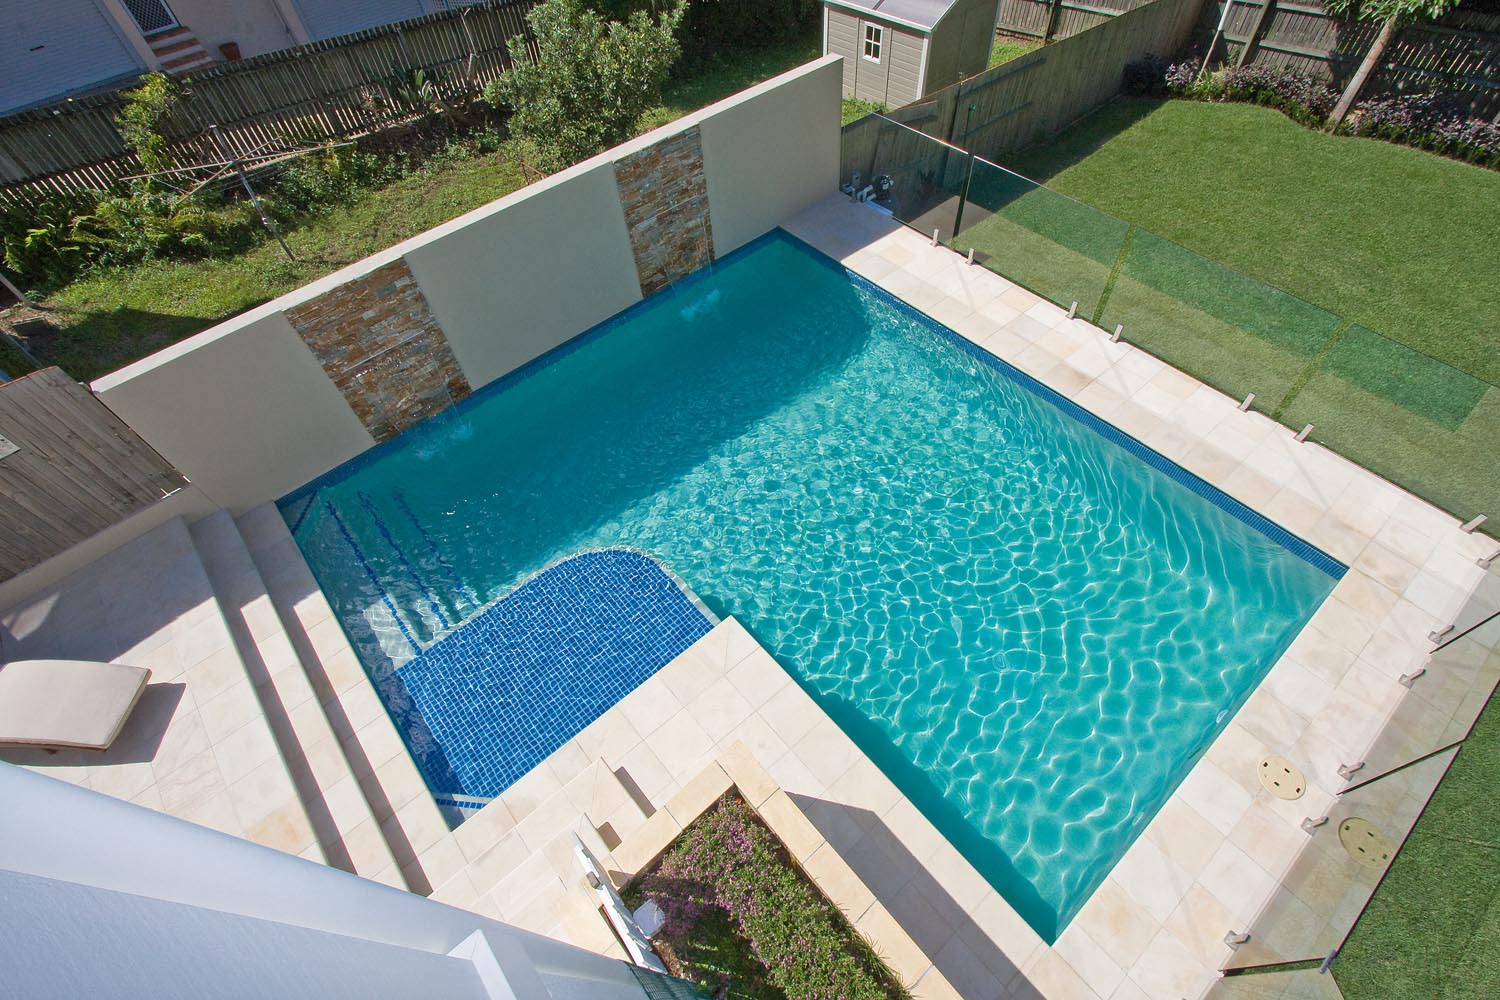 A touch of sand sandstone brisbane backyard completehome for Pool home show brisbane